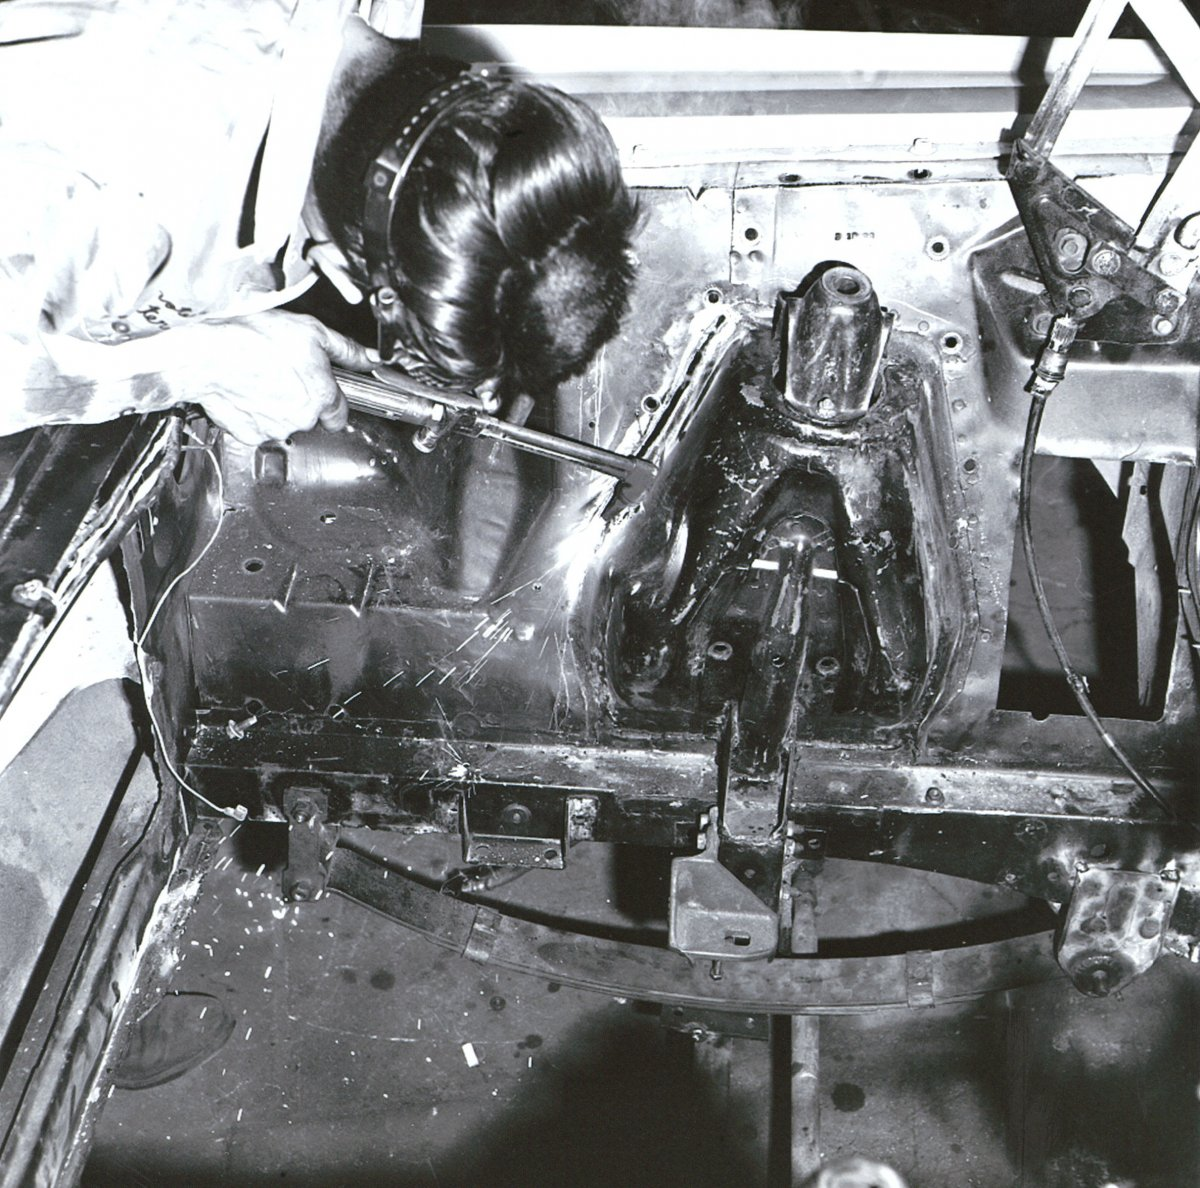 1964 AFX Comet-Hairy Canary Construction Photos0013.jpg